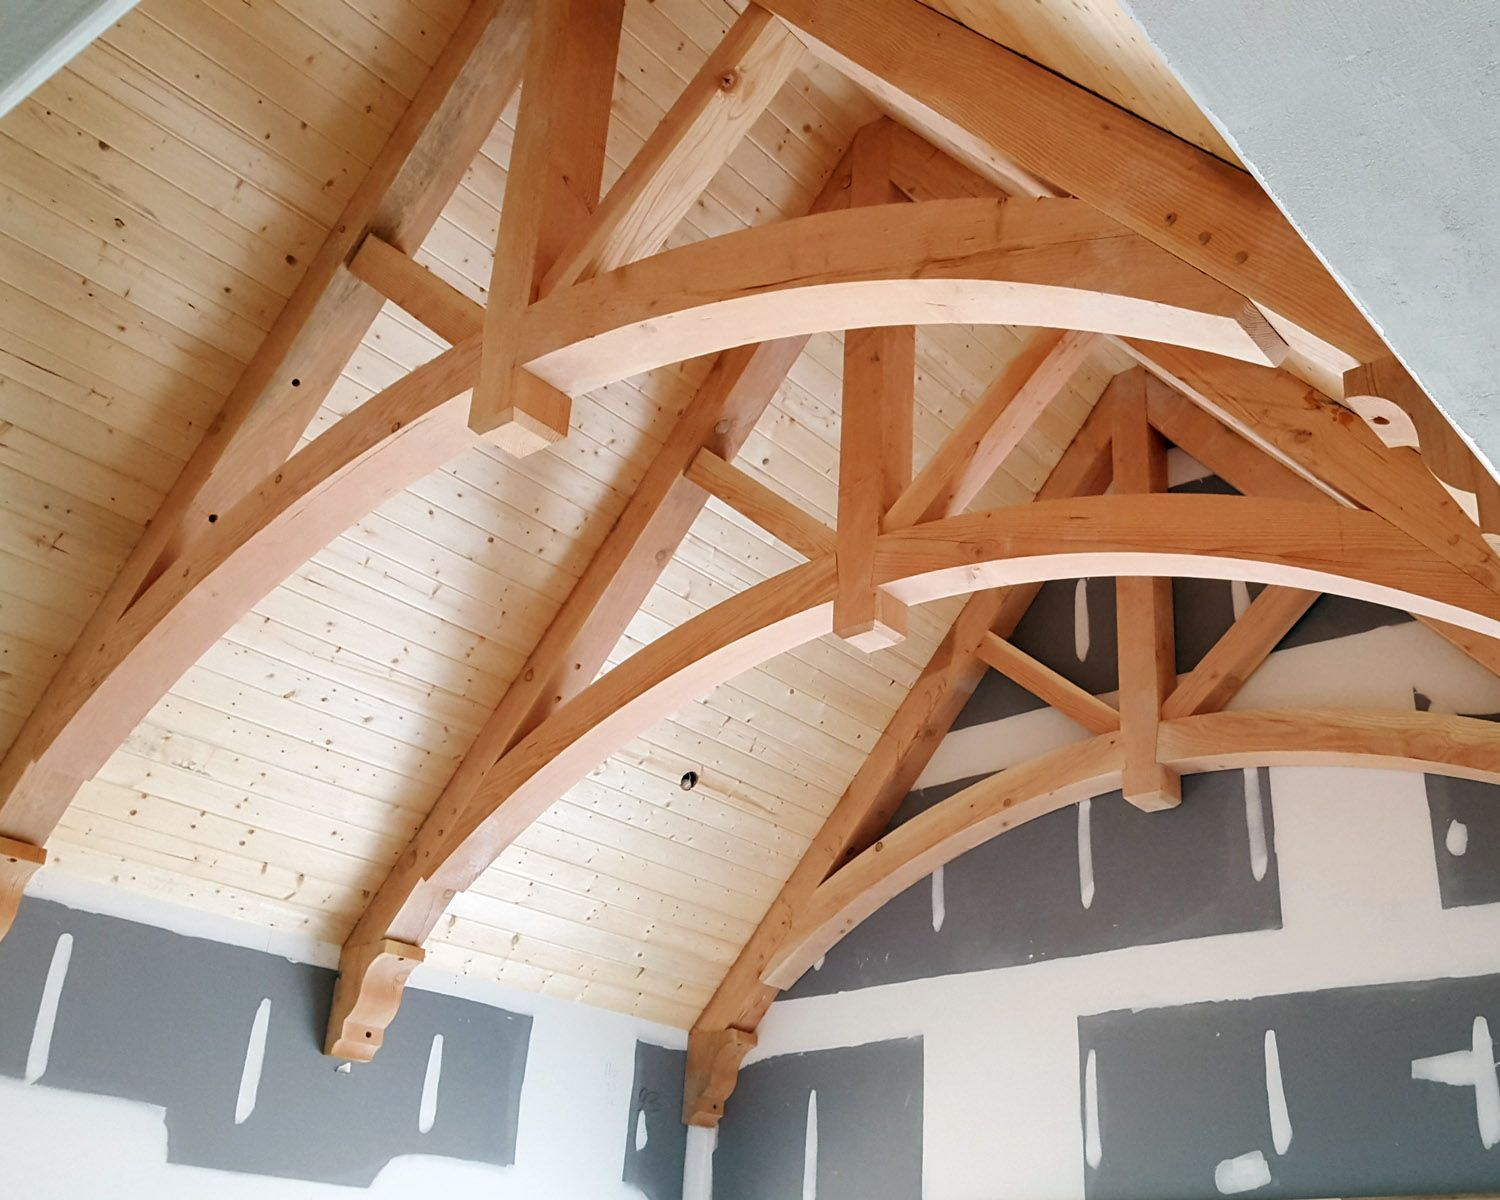 Douglas Fir Arched Chord King Post Trusses And Corbels